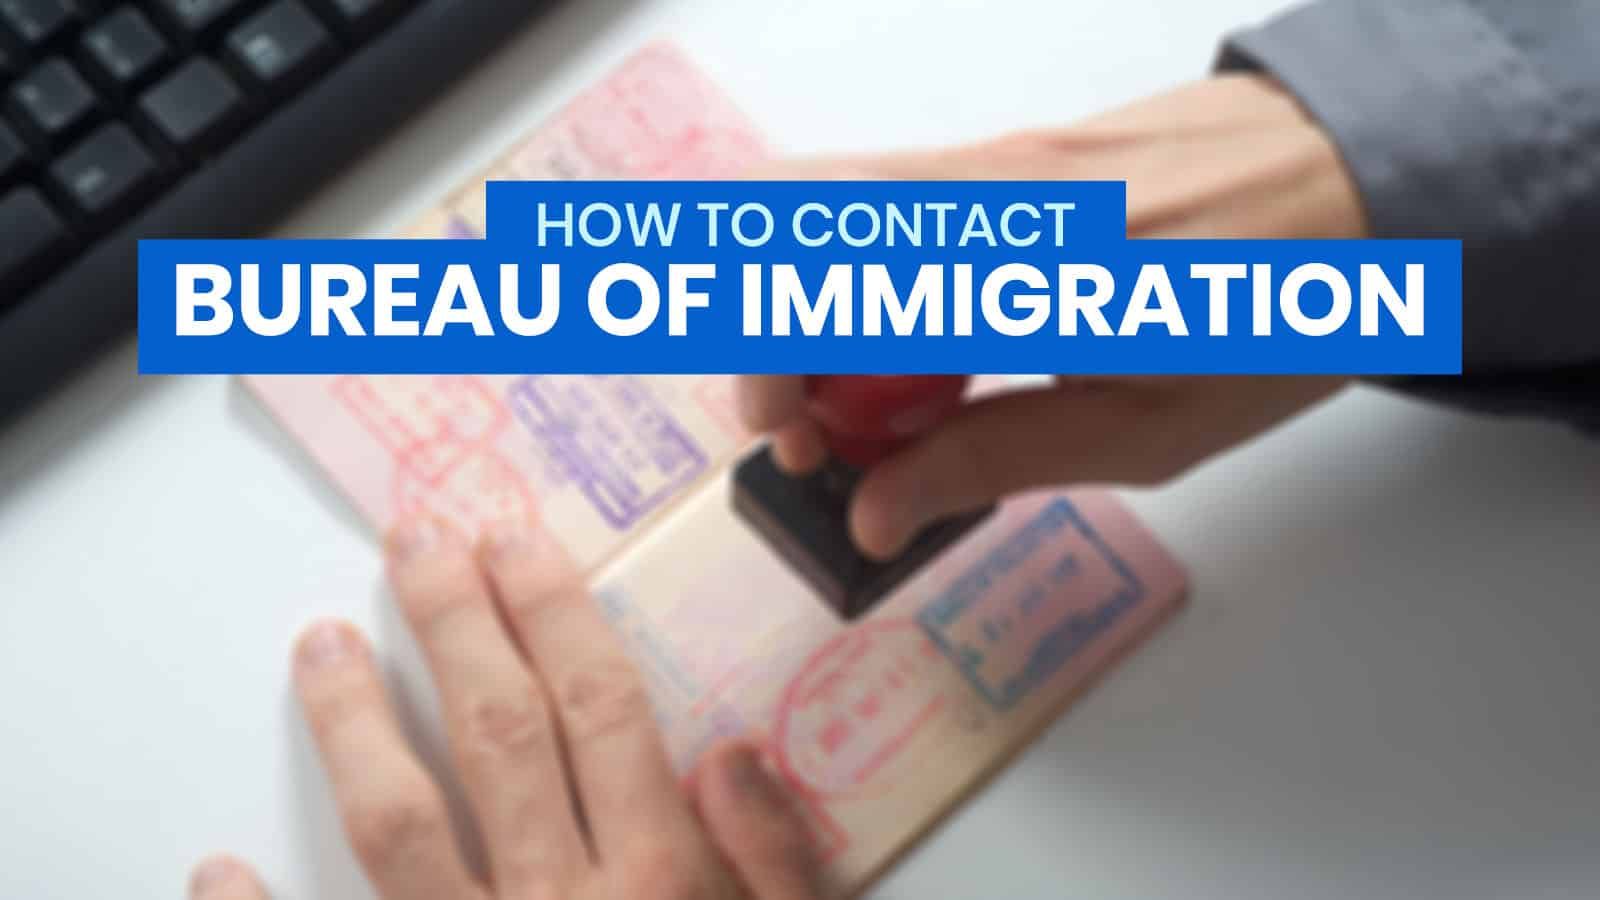 How to Contact the BUREAU OF IMMIGRATION in the Philippines